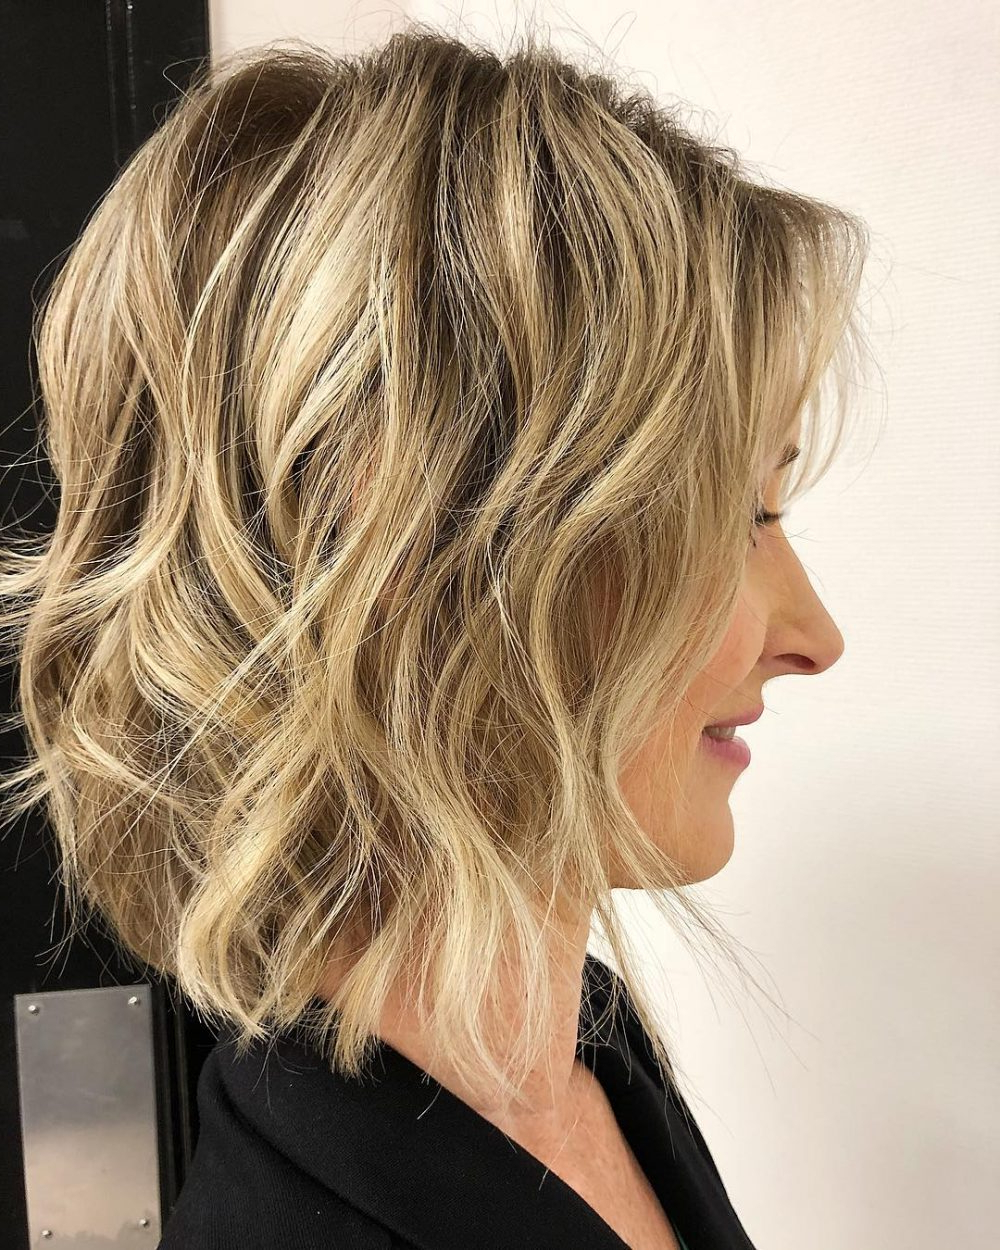 43 Perfect Short Hairstyles For Fine Hair In 2018 Throughout Short Feminine Hairstyles For Fine Hair (View 9 of 25)